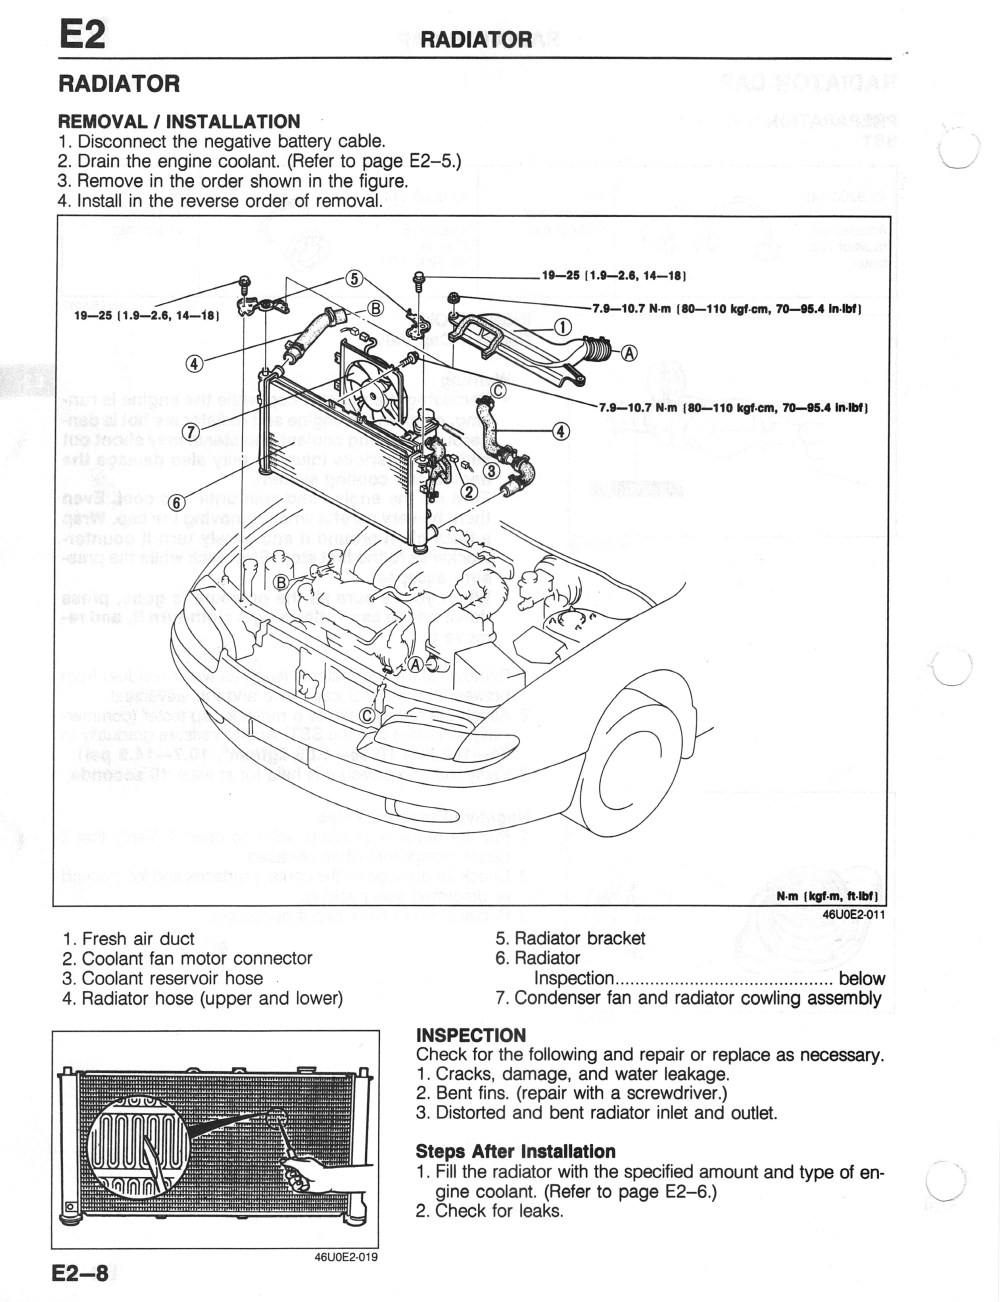 medium resolution of 2000 mazda 626 4 cylinder coolant system diagram images gallery